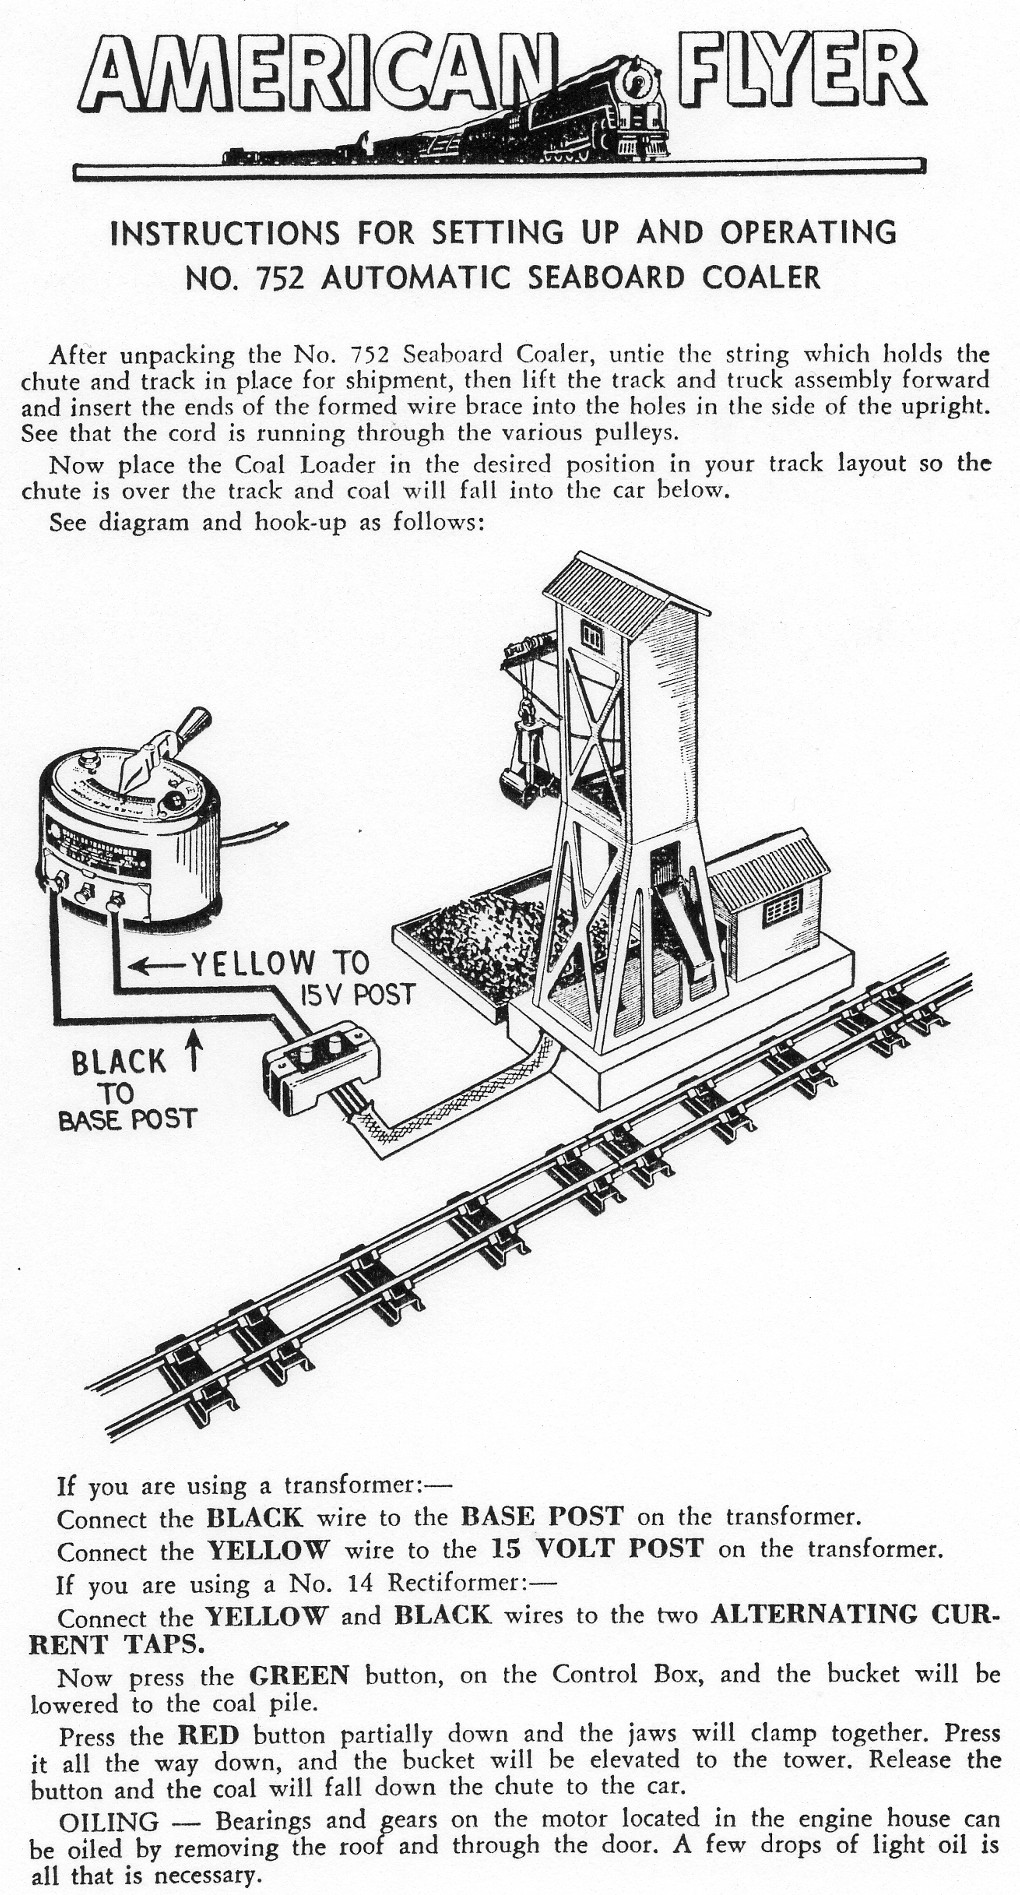 Instructions for Setting Up and Operating No. 752 Automatic Seaboard Coaler